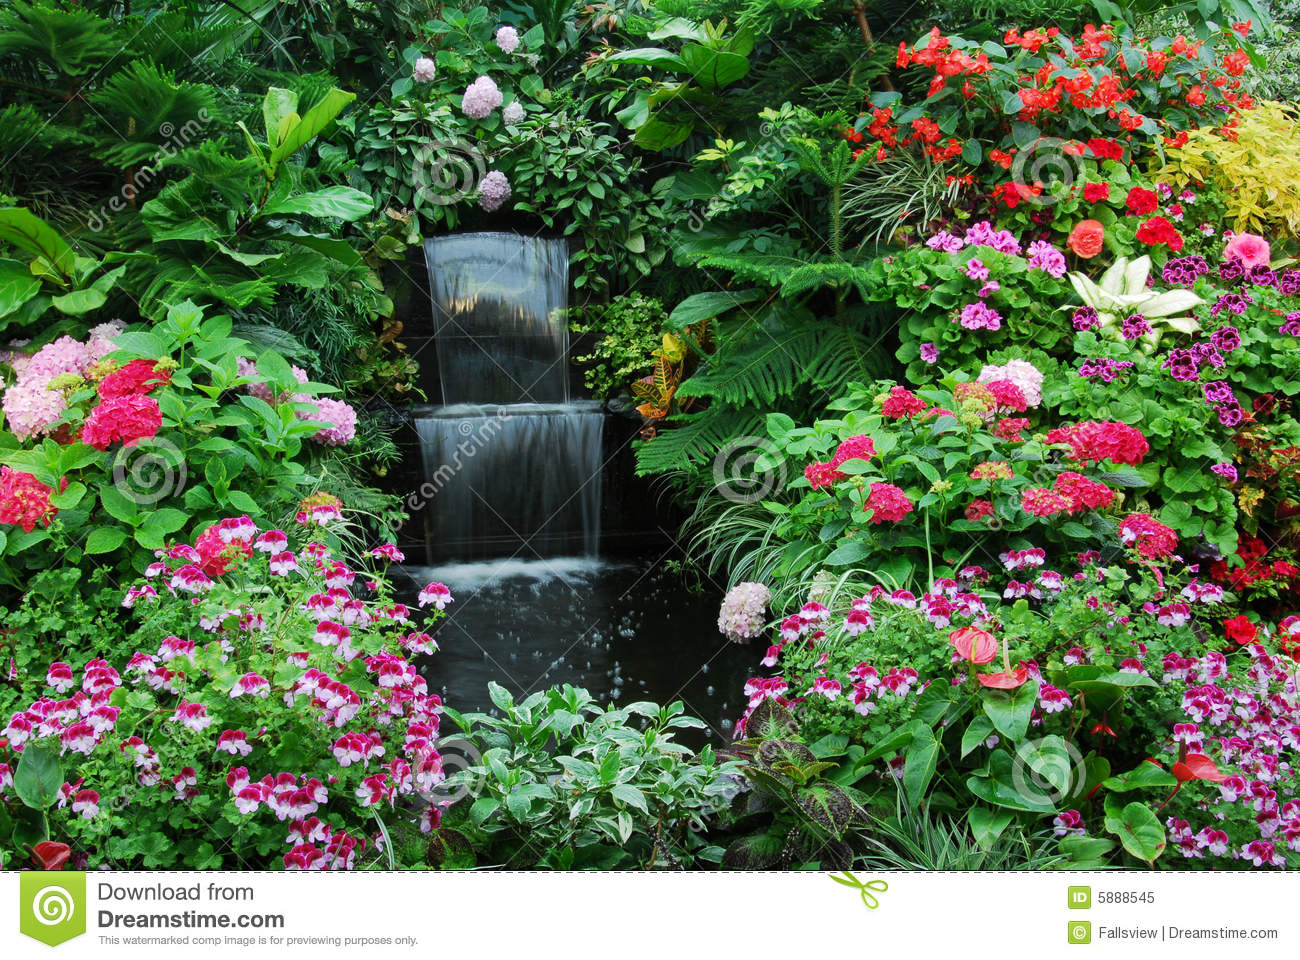 Flowers and waterfall garden stock image image of canada for Flowers and gardens pictures